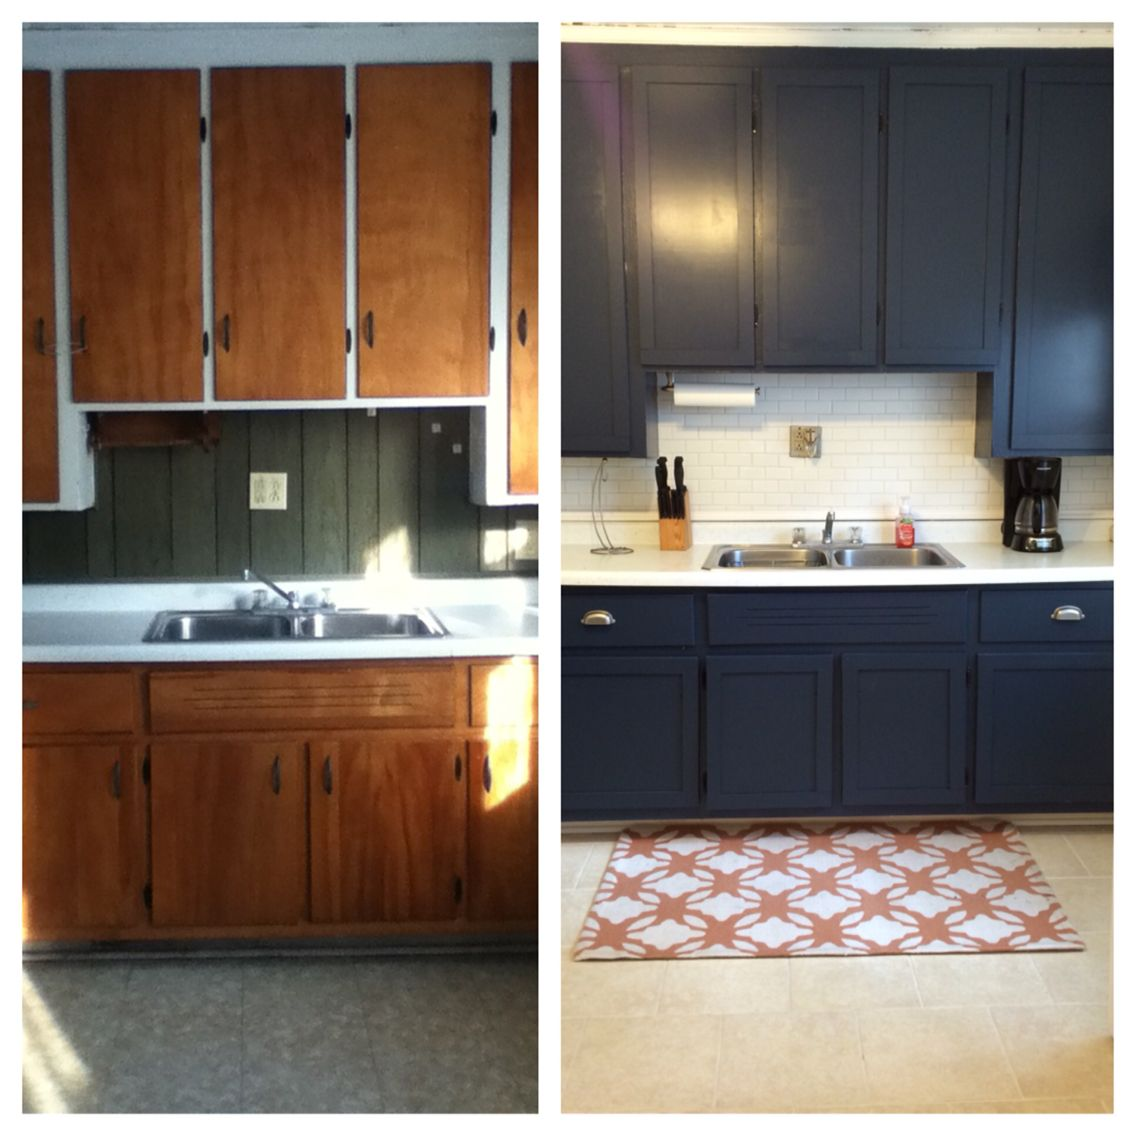 Apartment Kitchen Cabinets: $500 DIY Small Apartment Kitchen Remodel. Painted Cabinets, Added Shaker Style Trim To Cabinets